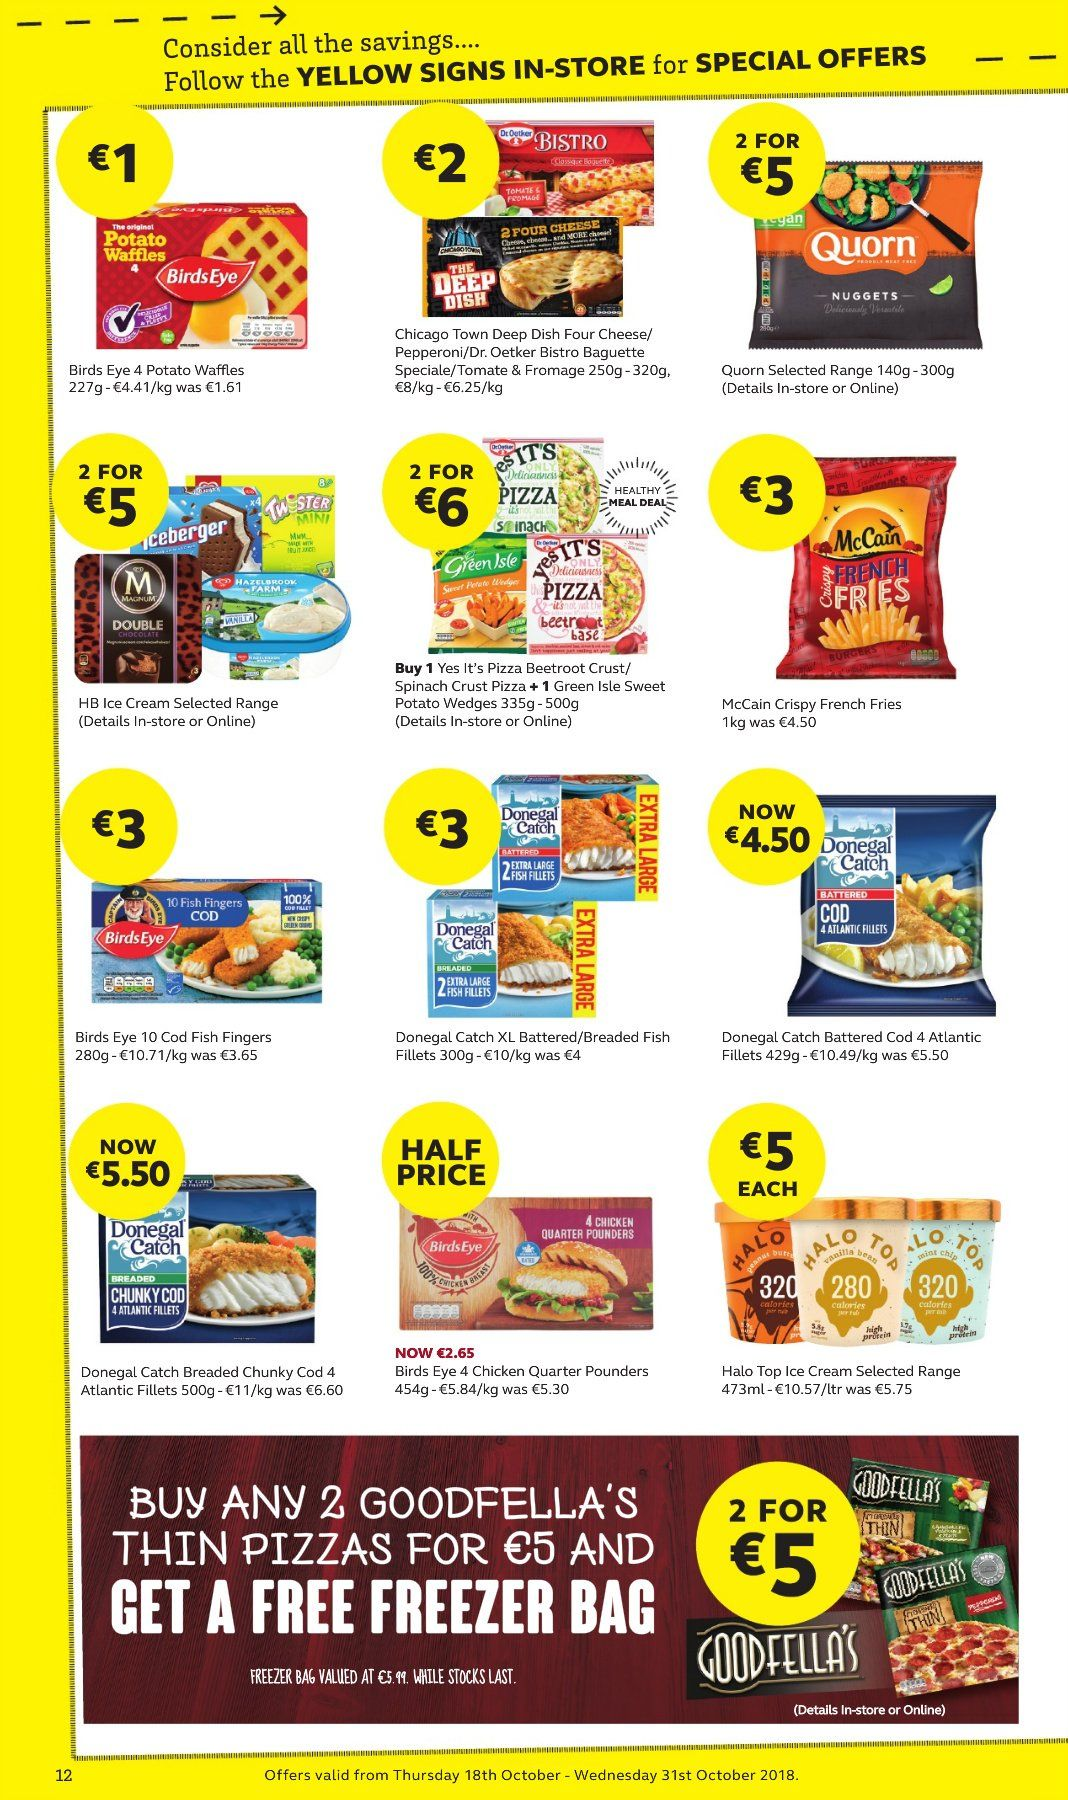 SuperValu offer  - 18.10.2018 - 31.10.2018 - Sales products - baguette, waffles, spinach, sweet potatoe, beetroot juice, bacalao, cod, fish fillets, fish, fish fingers, pizza, nuggets, Bird's Eye, breaded fish, pepperoni, cheese, Dr. Oetker, ice cream, Donegal Catch, McCain, potato fries, potato wedges, french fries, chicken. Page 12.